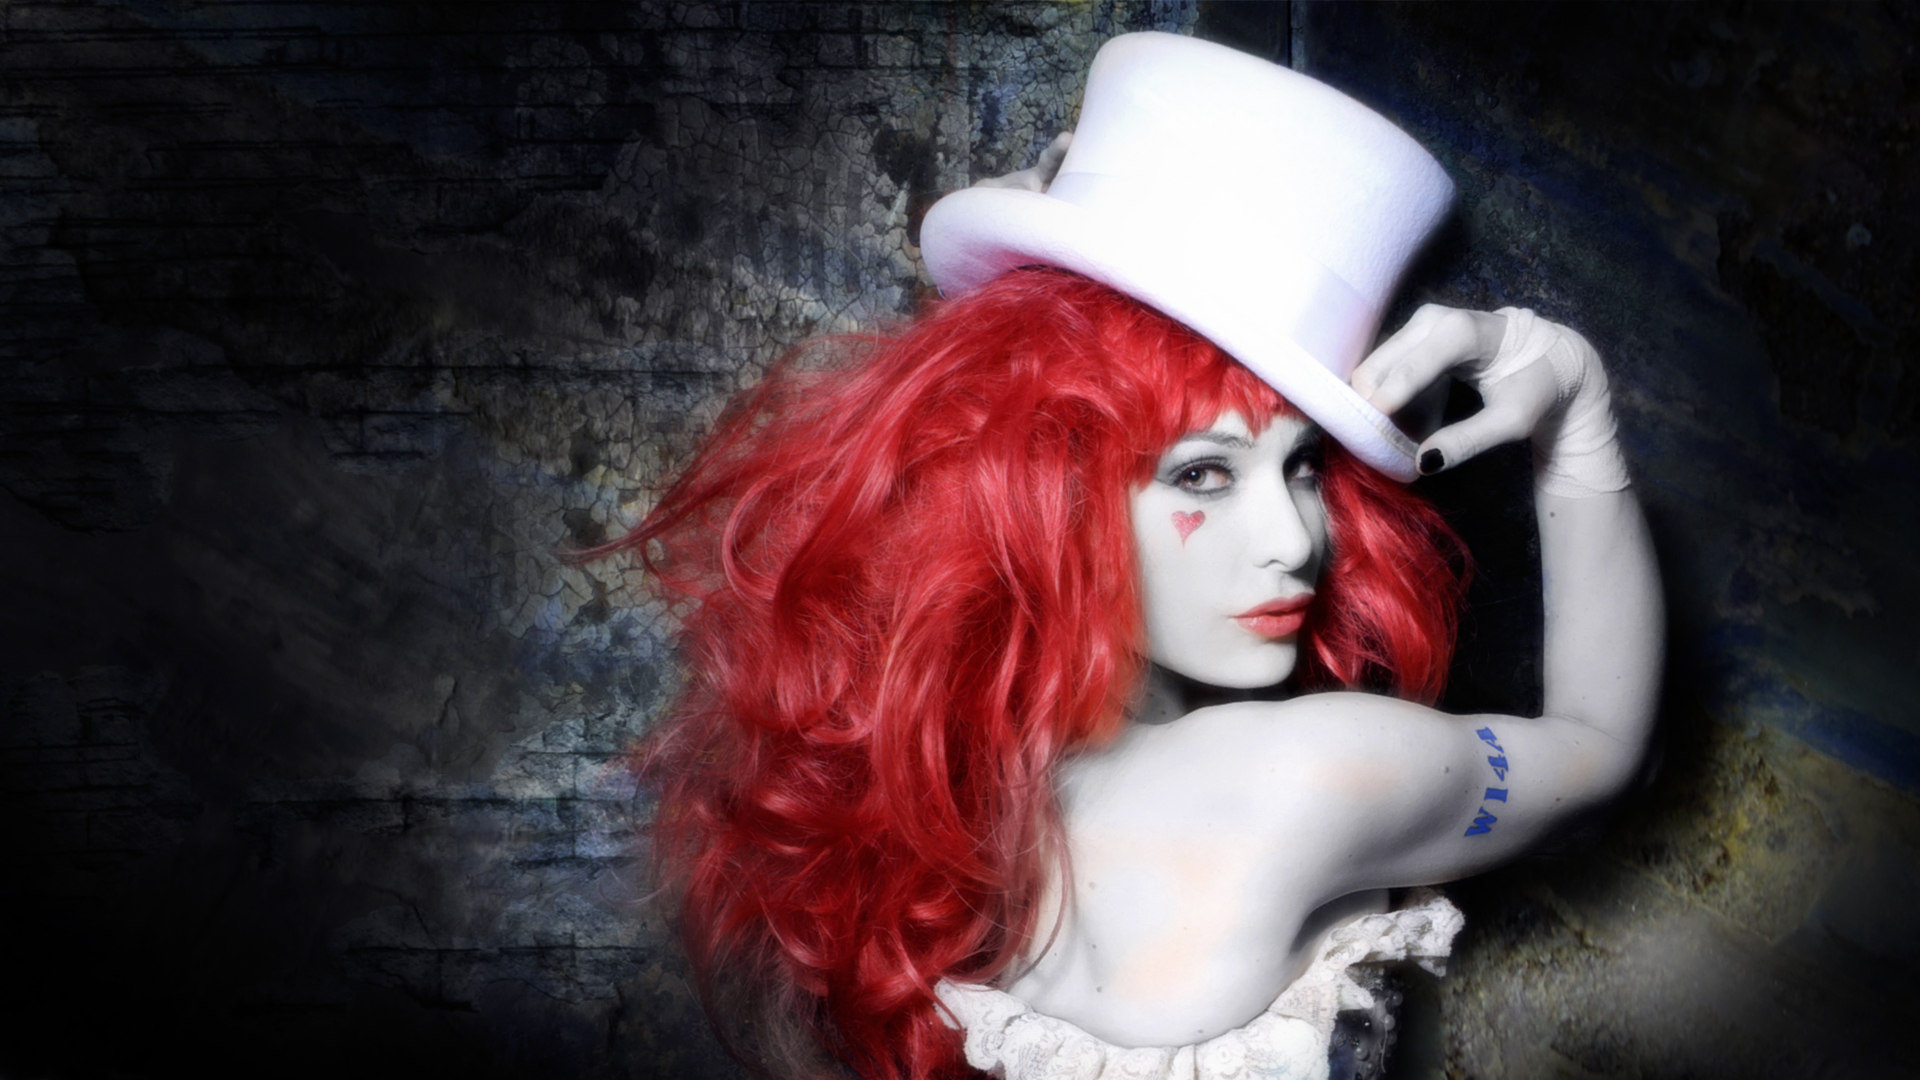 Music - Emilie Autumn Wallpaper